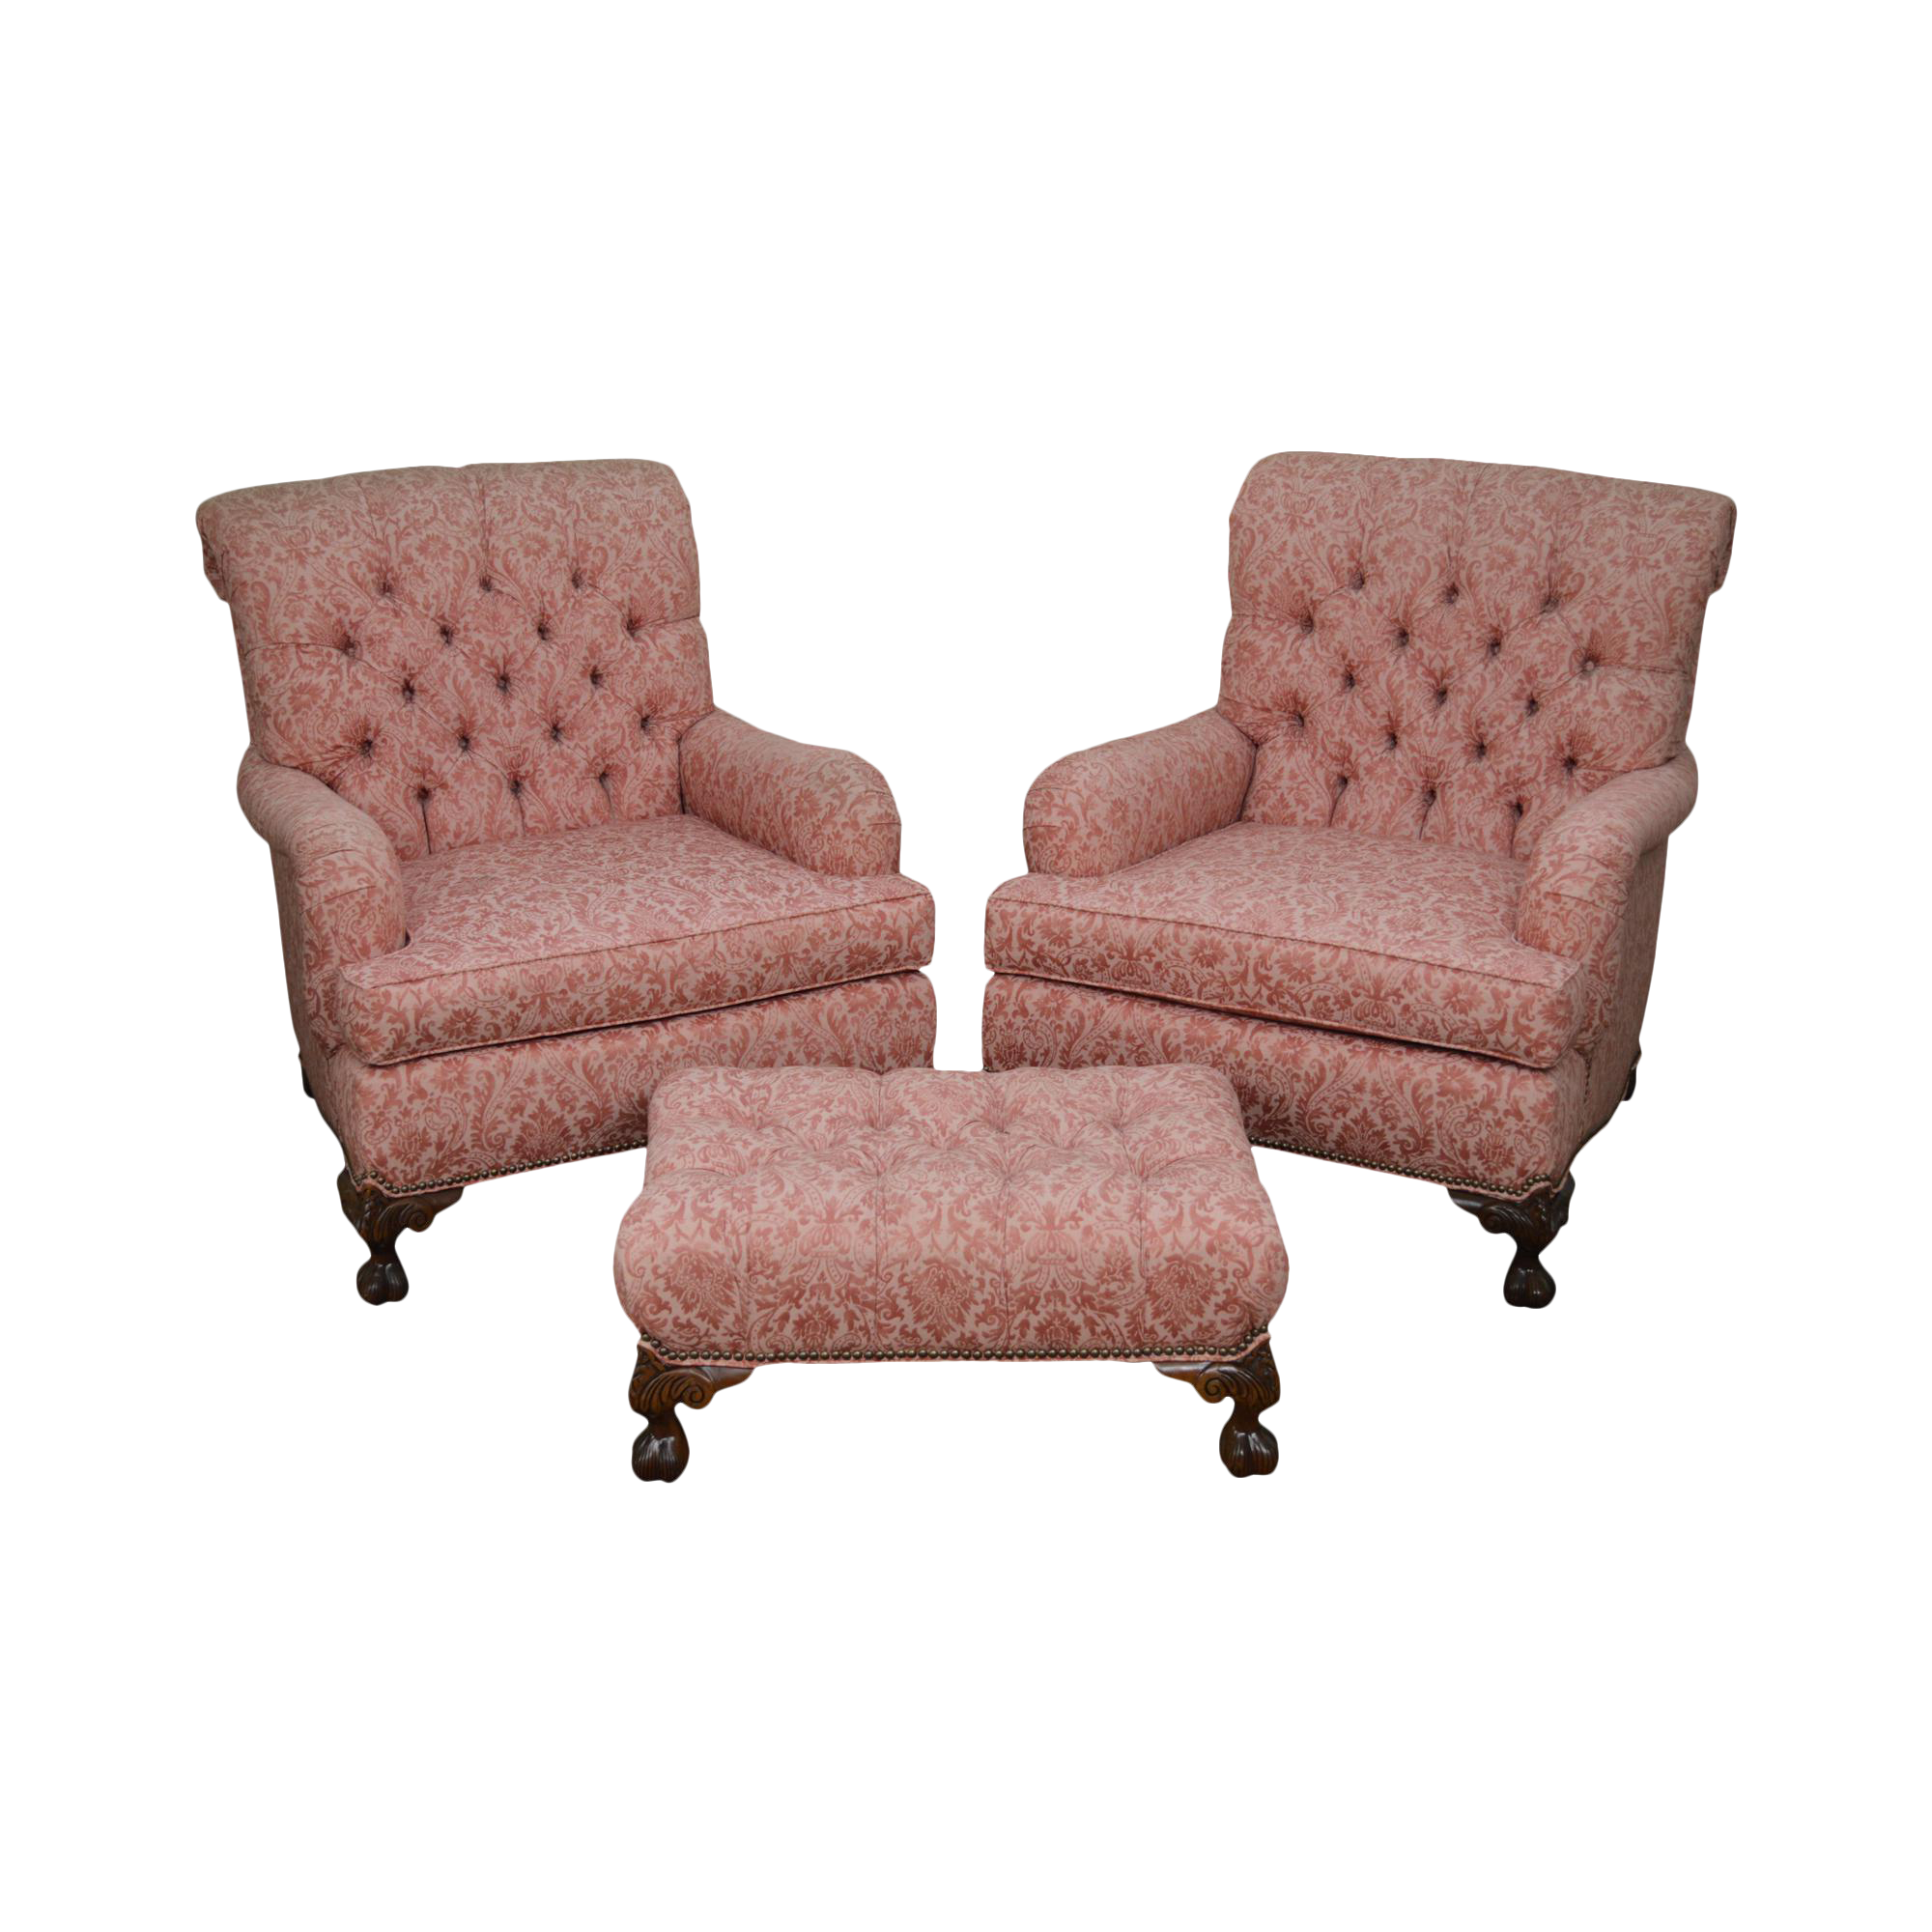 Stoneleigh Old Hickory Tannery Tufted Lounge Chairs u0026 Ottoman Set  sc 1 st  Chairish & Stoneleigh Old Hickory Tannery Tufted Lounge Chairs u0026 Ottoman Set ...